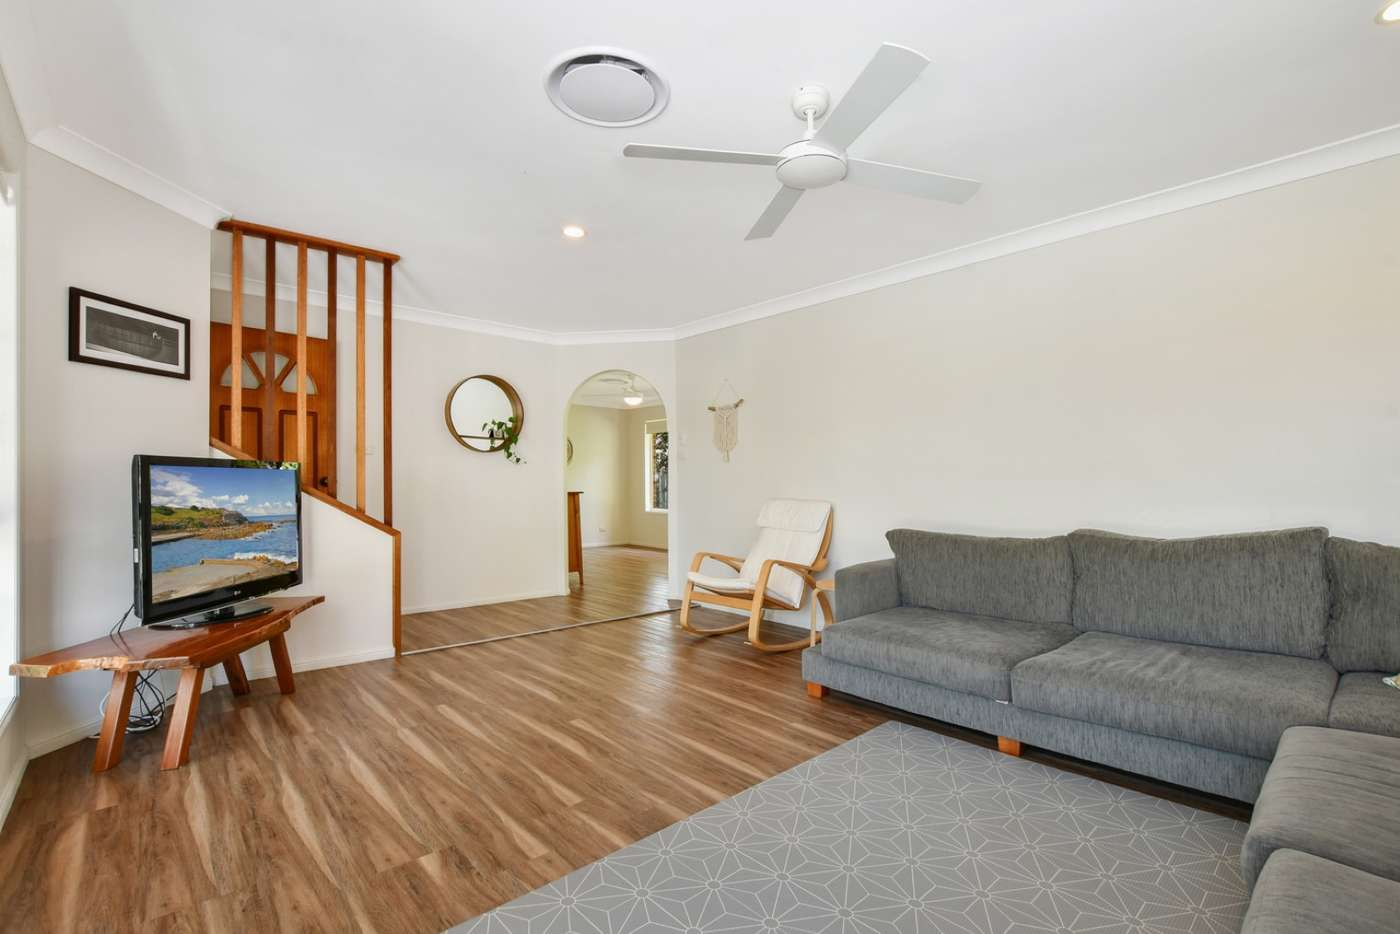 Seventh view of Homely house listing, 5 Cyclamen Court, Currimundi QLD 4551